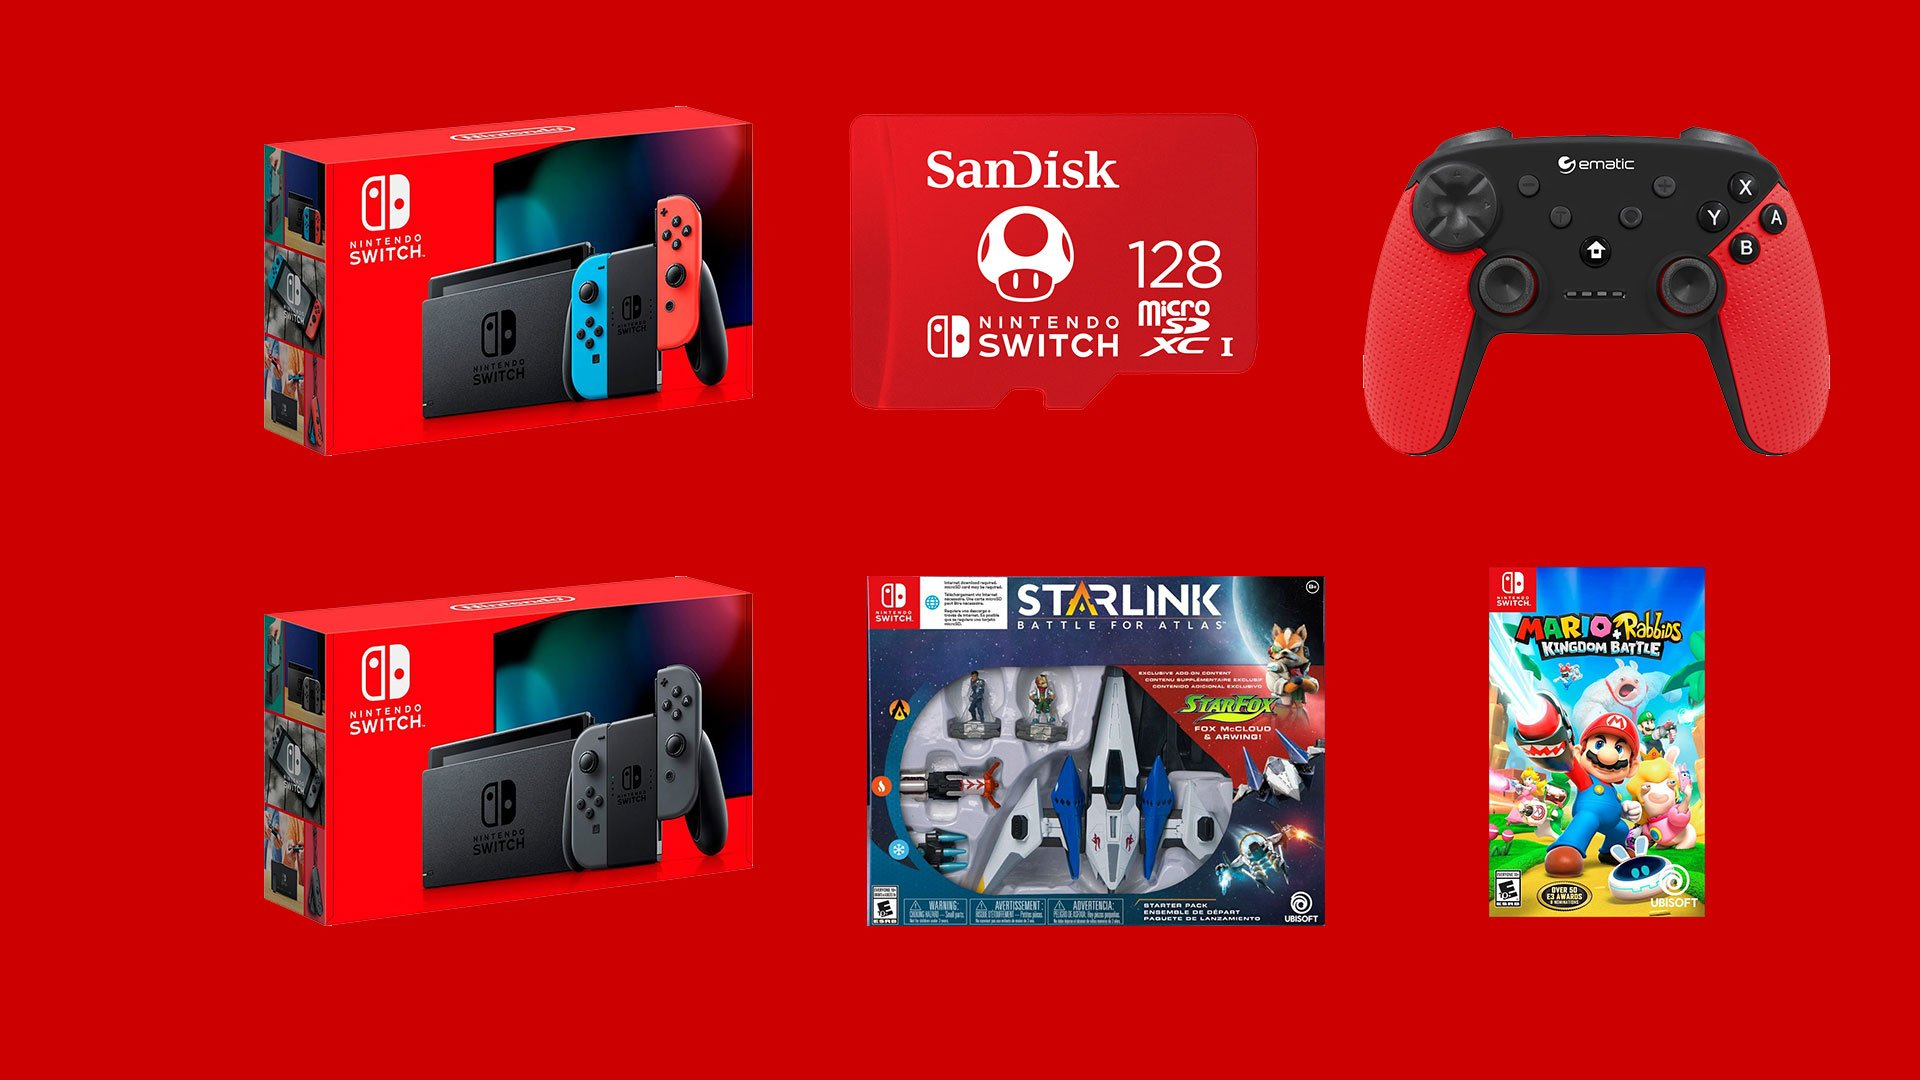 Cyber Monday Nintendo Switch Deals Are Better Free Games Sd Card Or Controllers